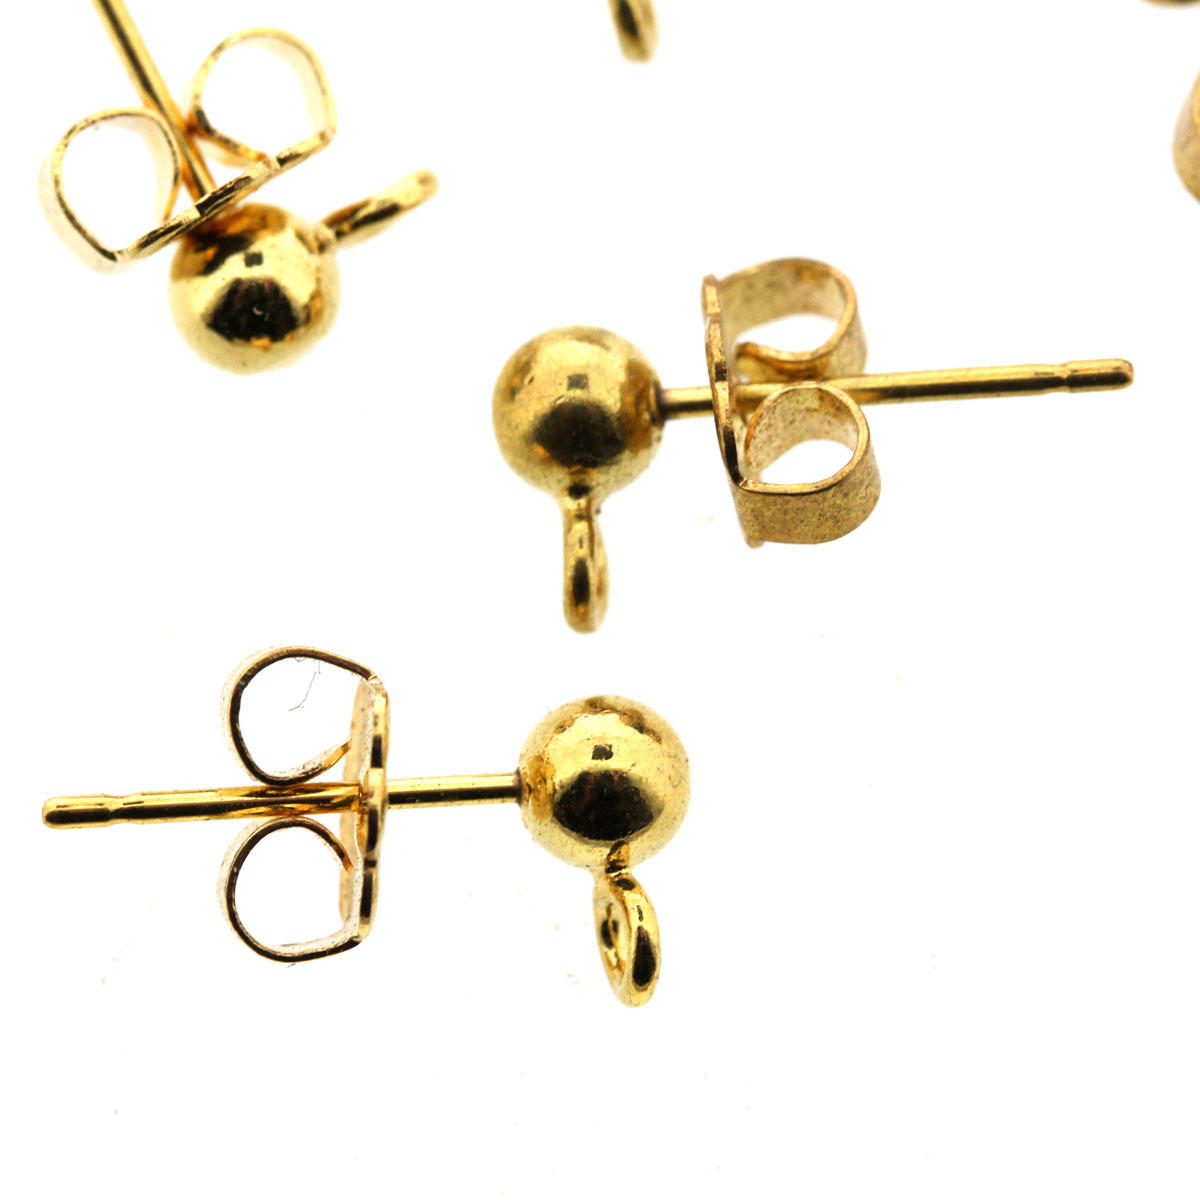 Gold Earring Fittings